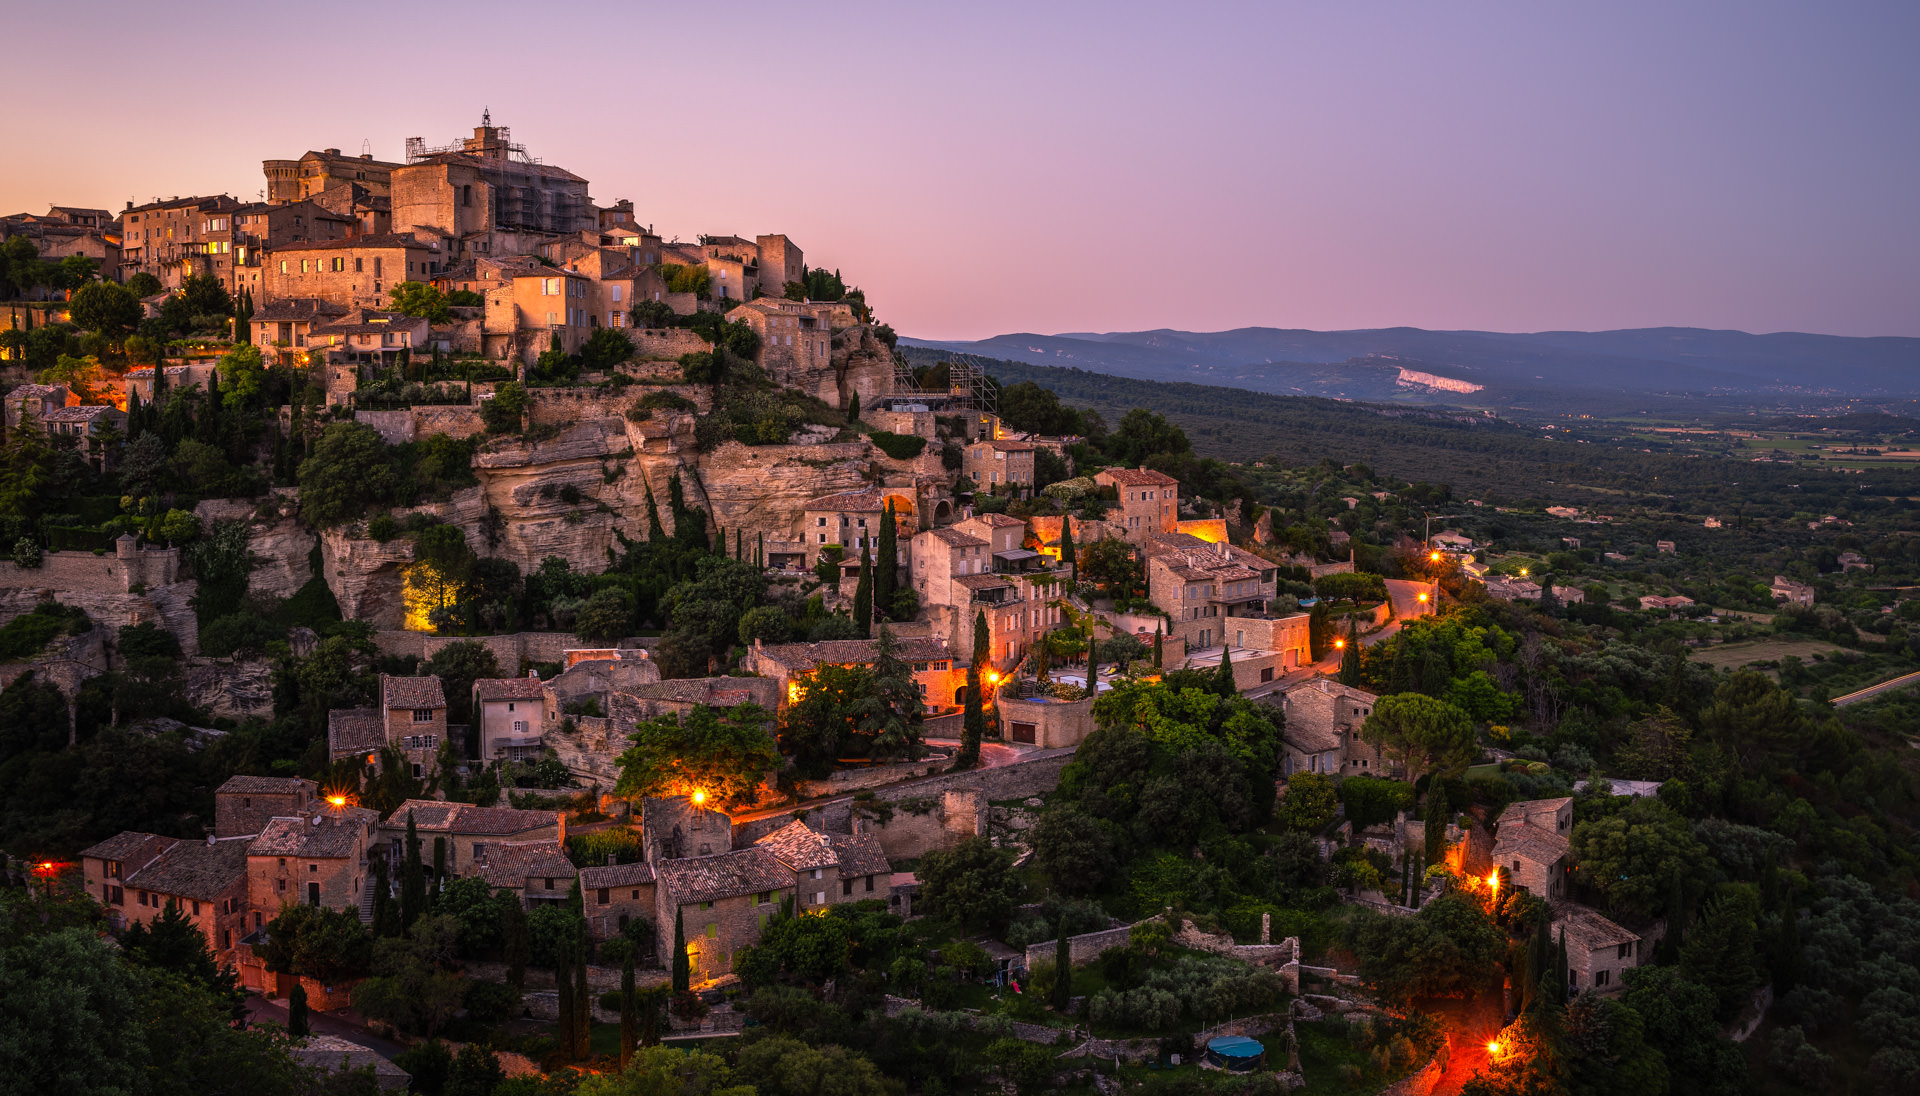 Village of Gordes during Sunset, Provence